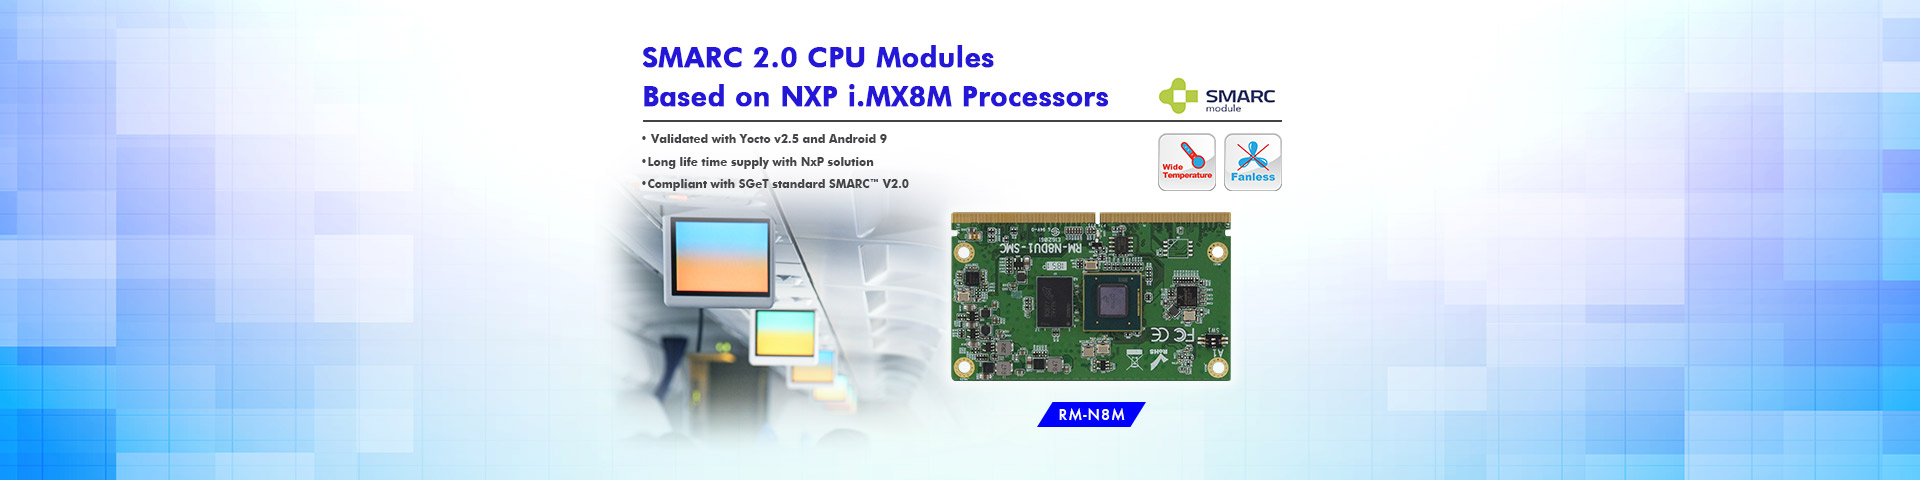 SMARC 2.0 CPU Modules based on NXP i.MX8M Processors